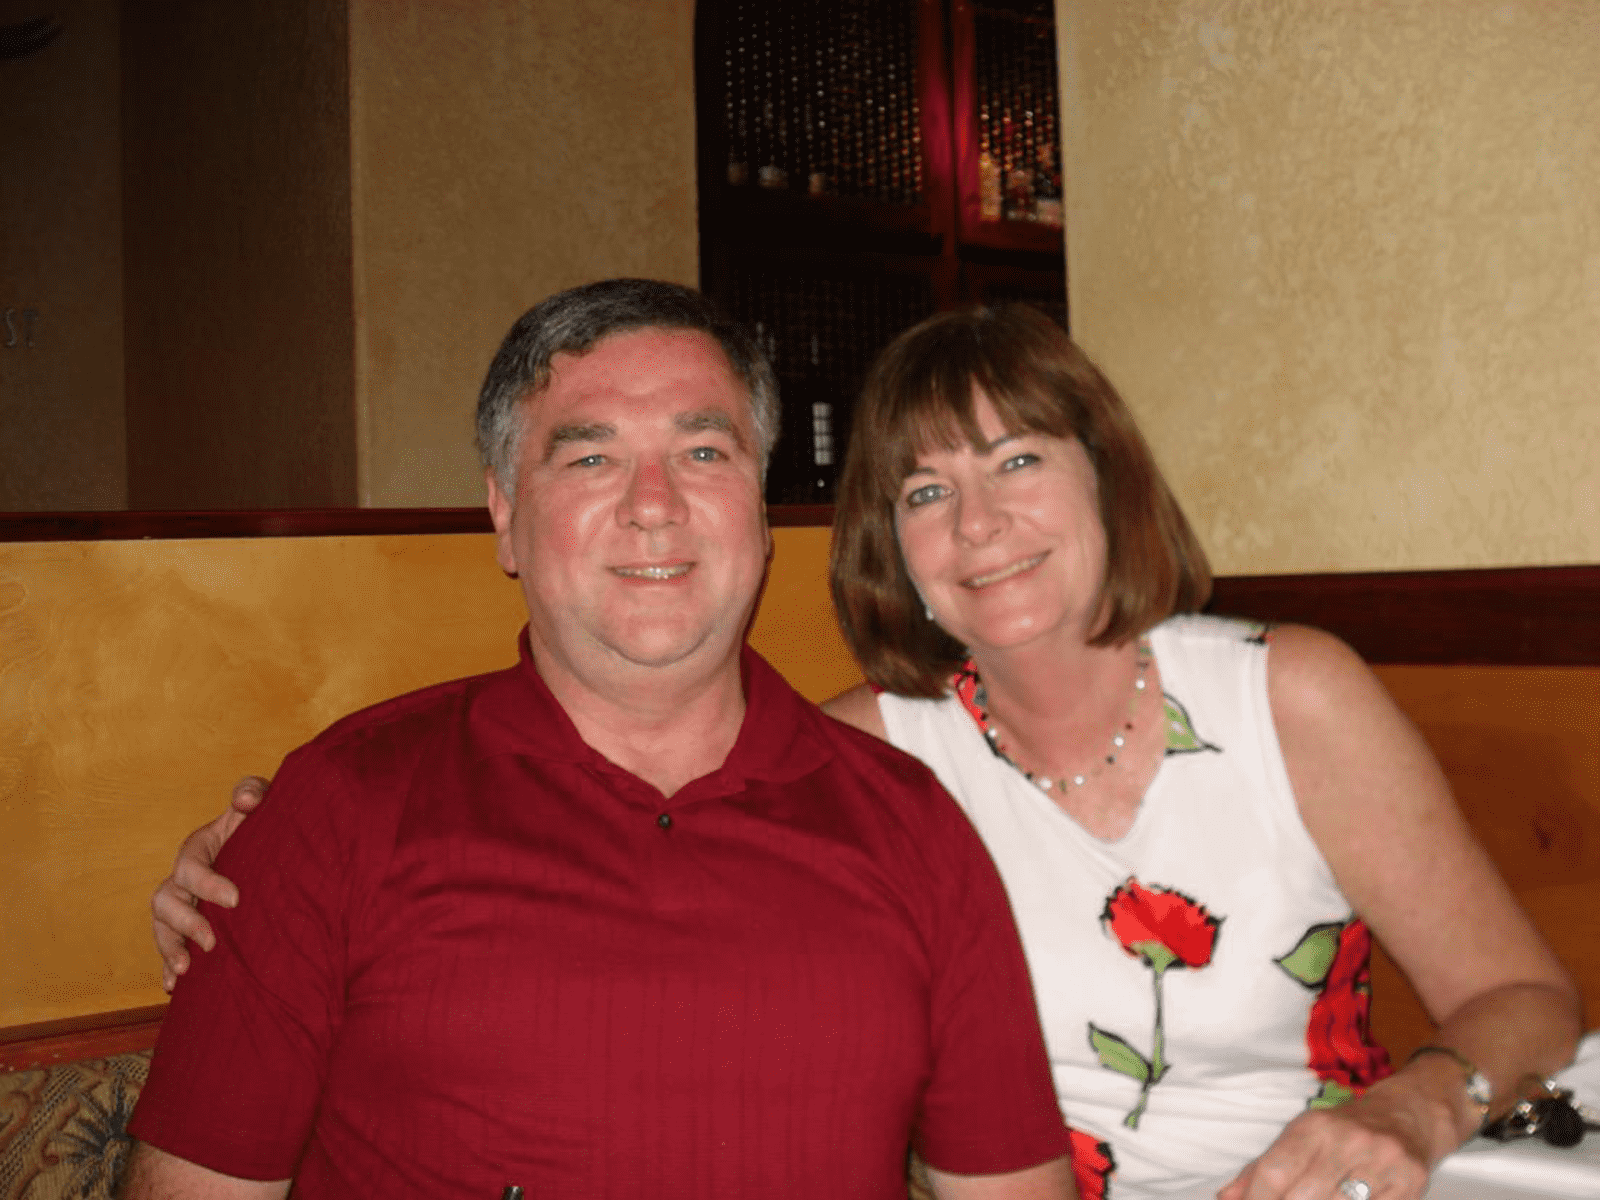 Brian & Mary from Middleborough Center, Massachusetts, United States